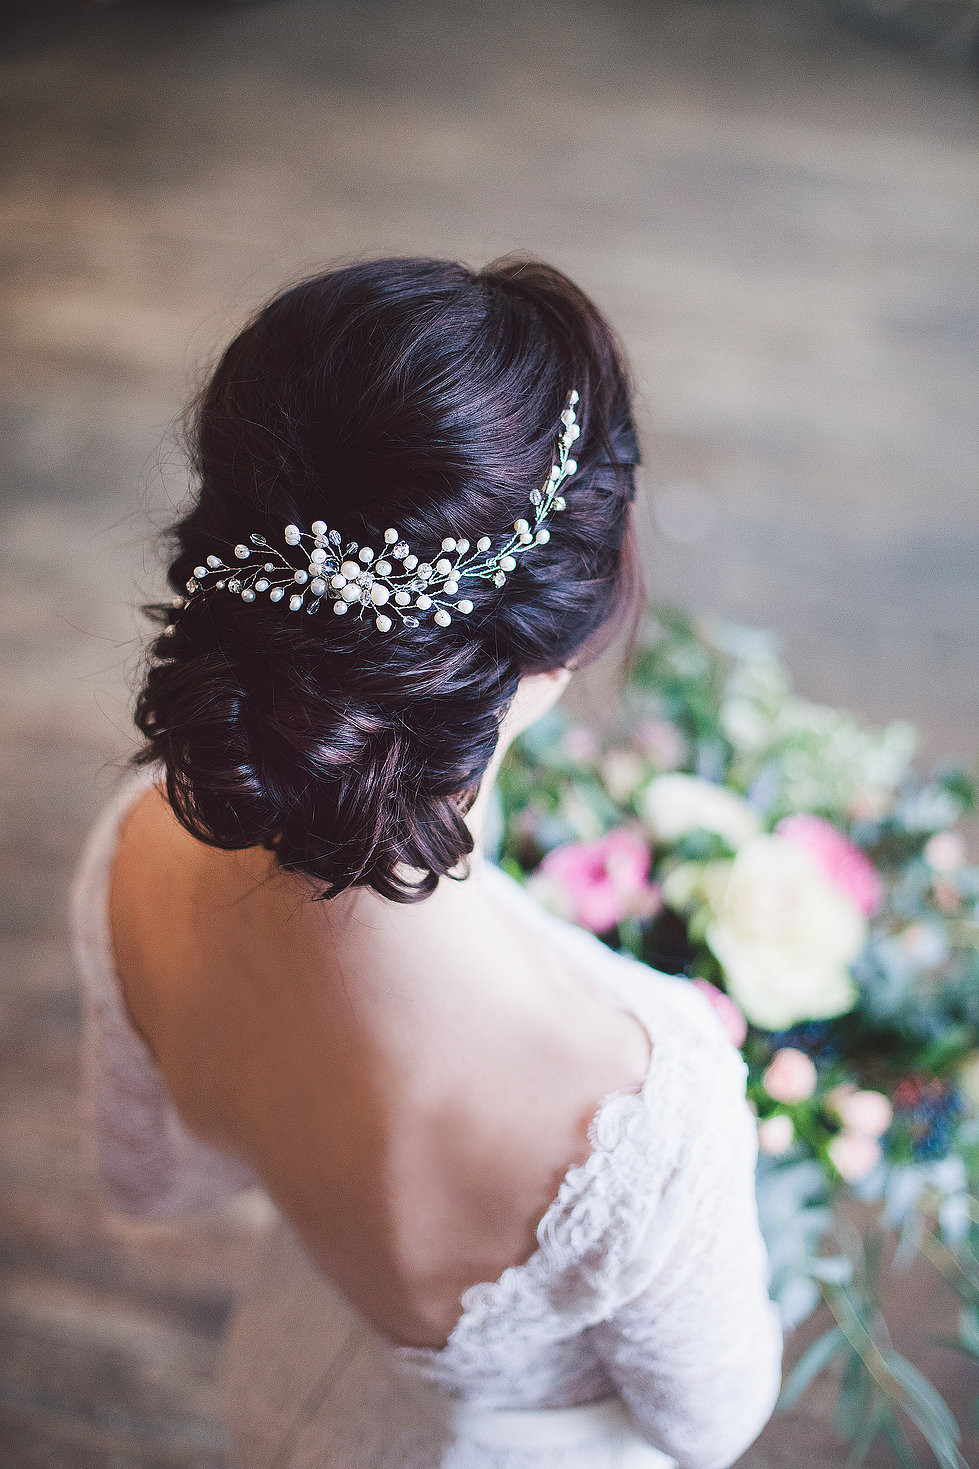 Wedding Bridal Hairstyles  25 Drop Dead Bridal Updo Hairstyles Ideas for Any Wedding